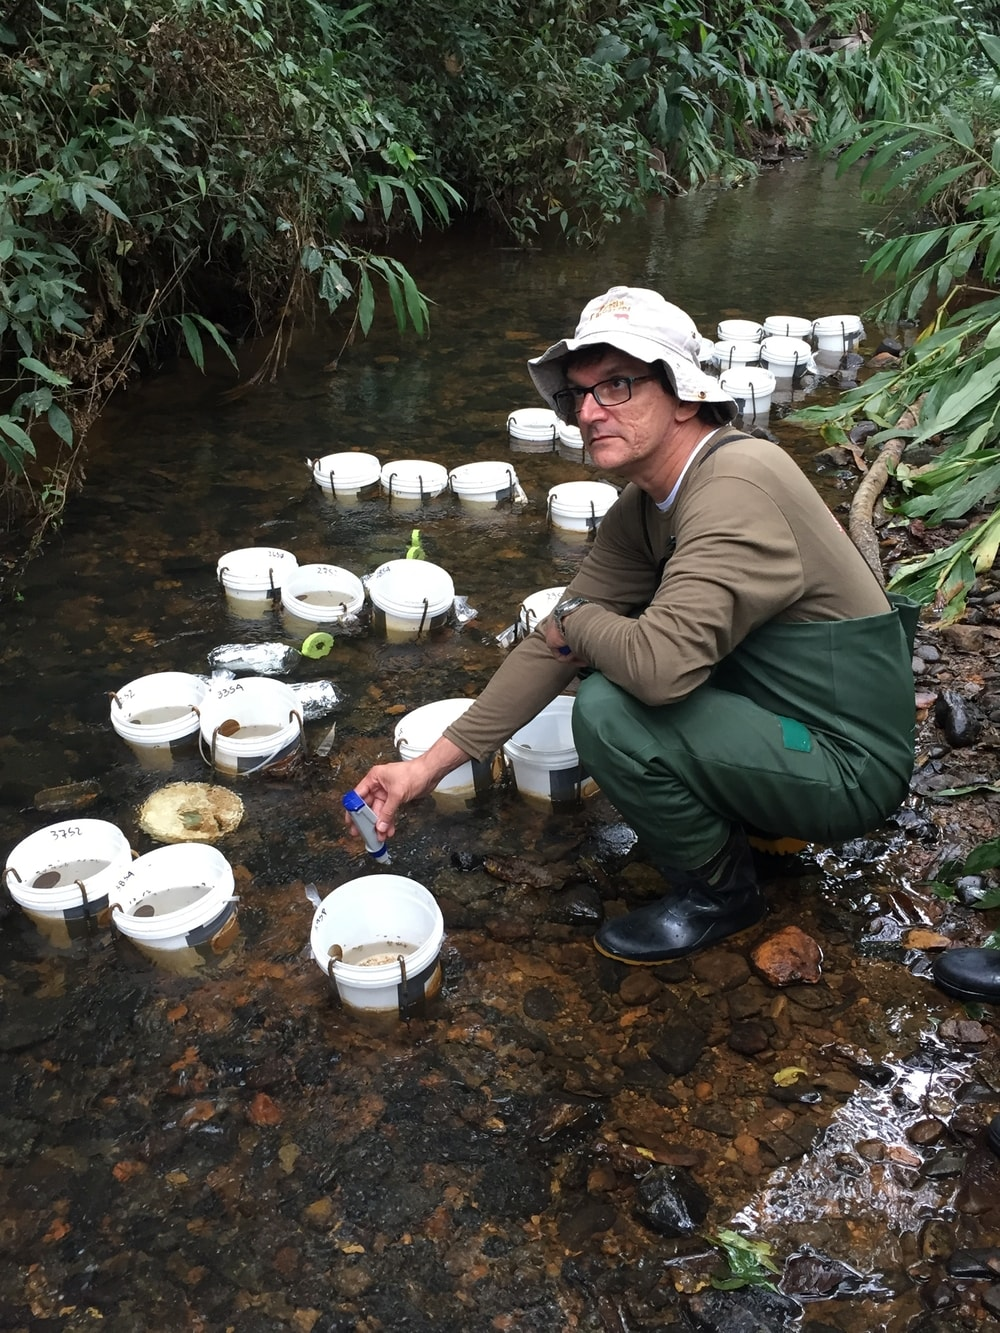 Mesocosmos implanted in a river to quantify the suppression of algae (and primary production) by invertebrates